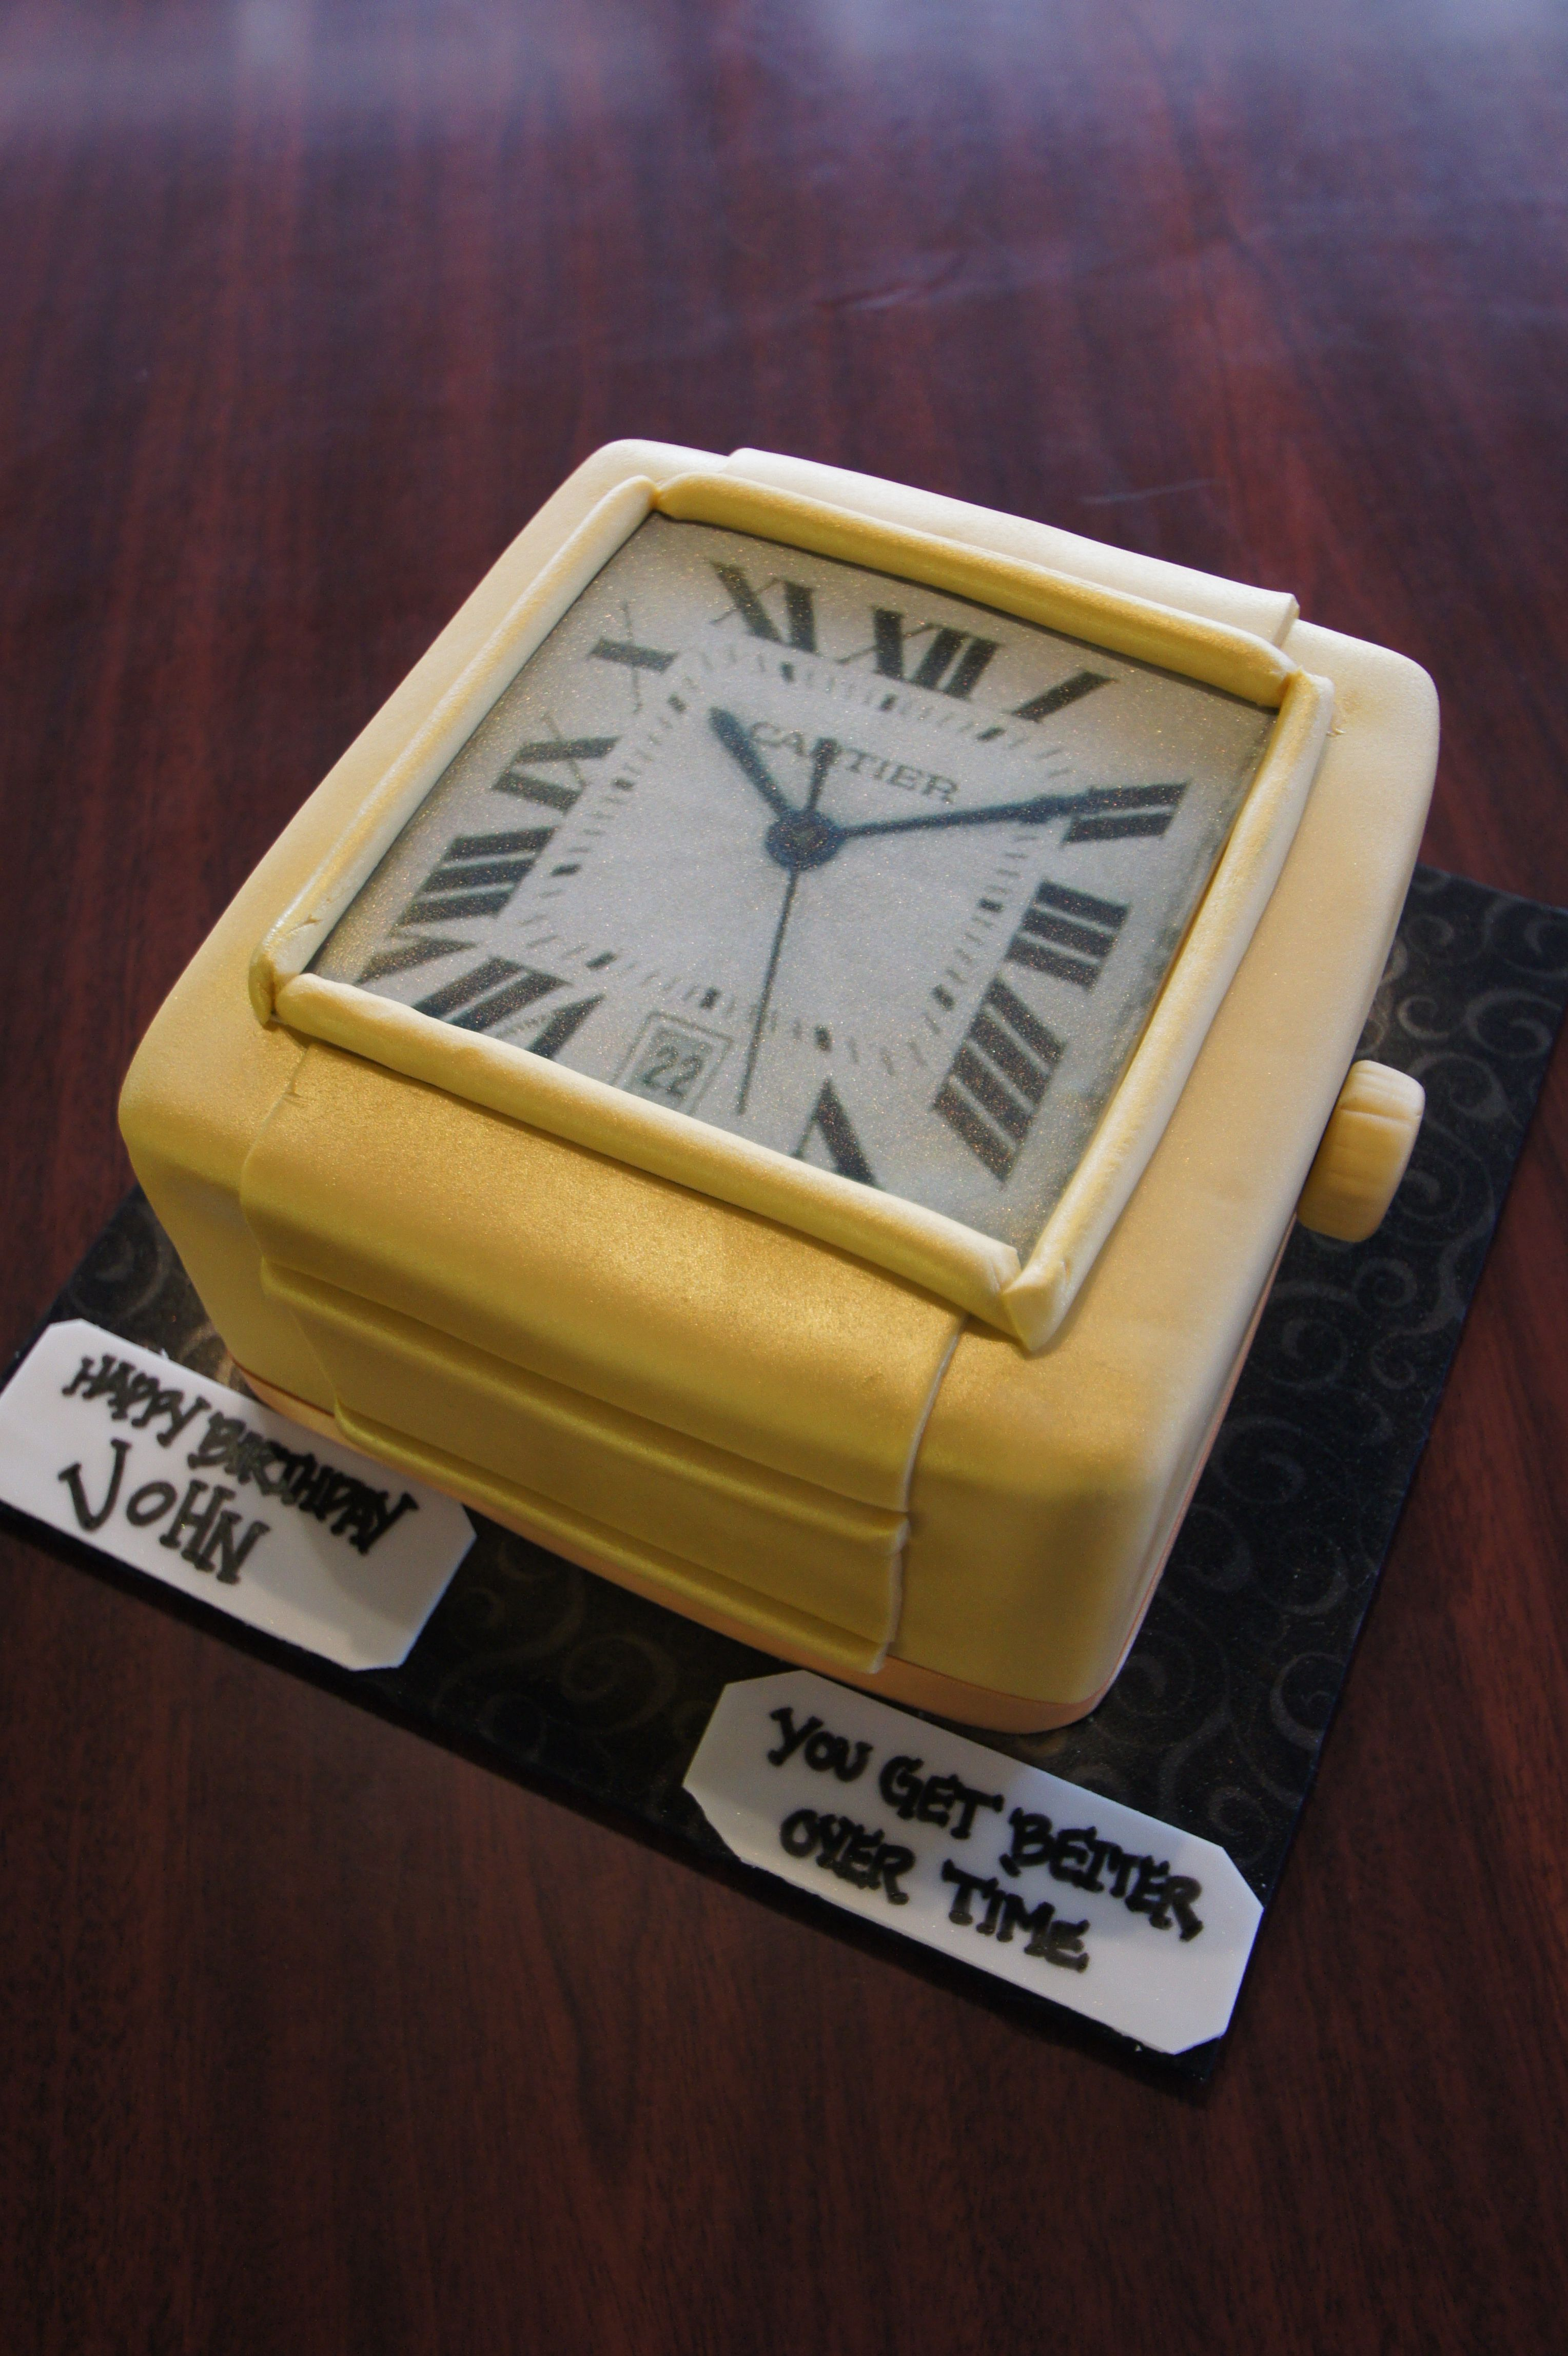 Square Cartier Watch Face Birthday Cake Adult Birthday Cakes In